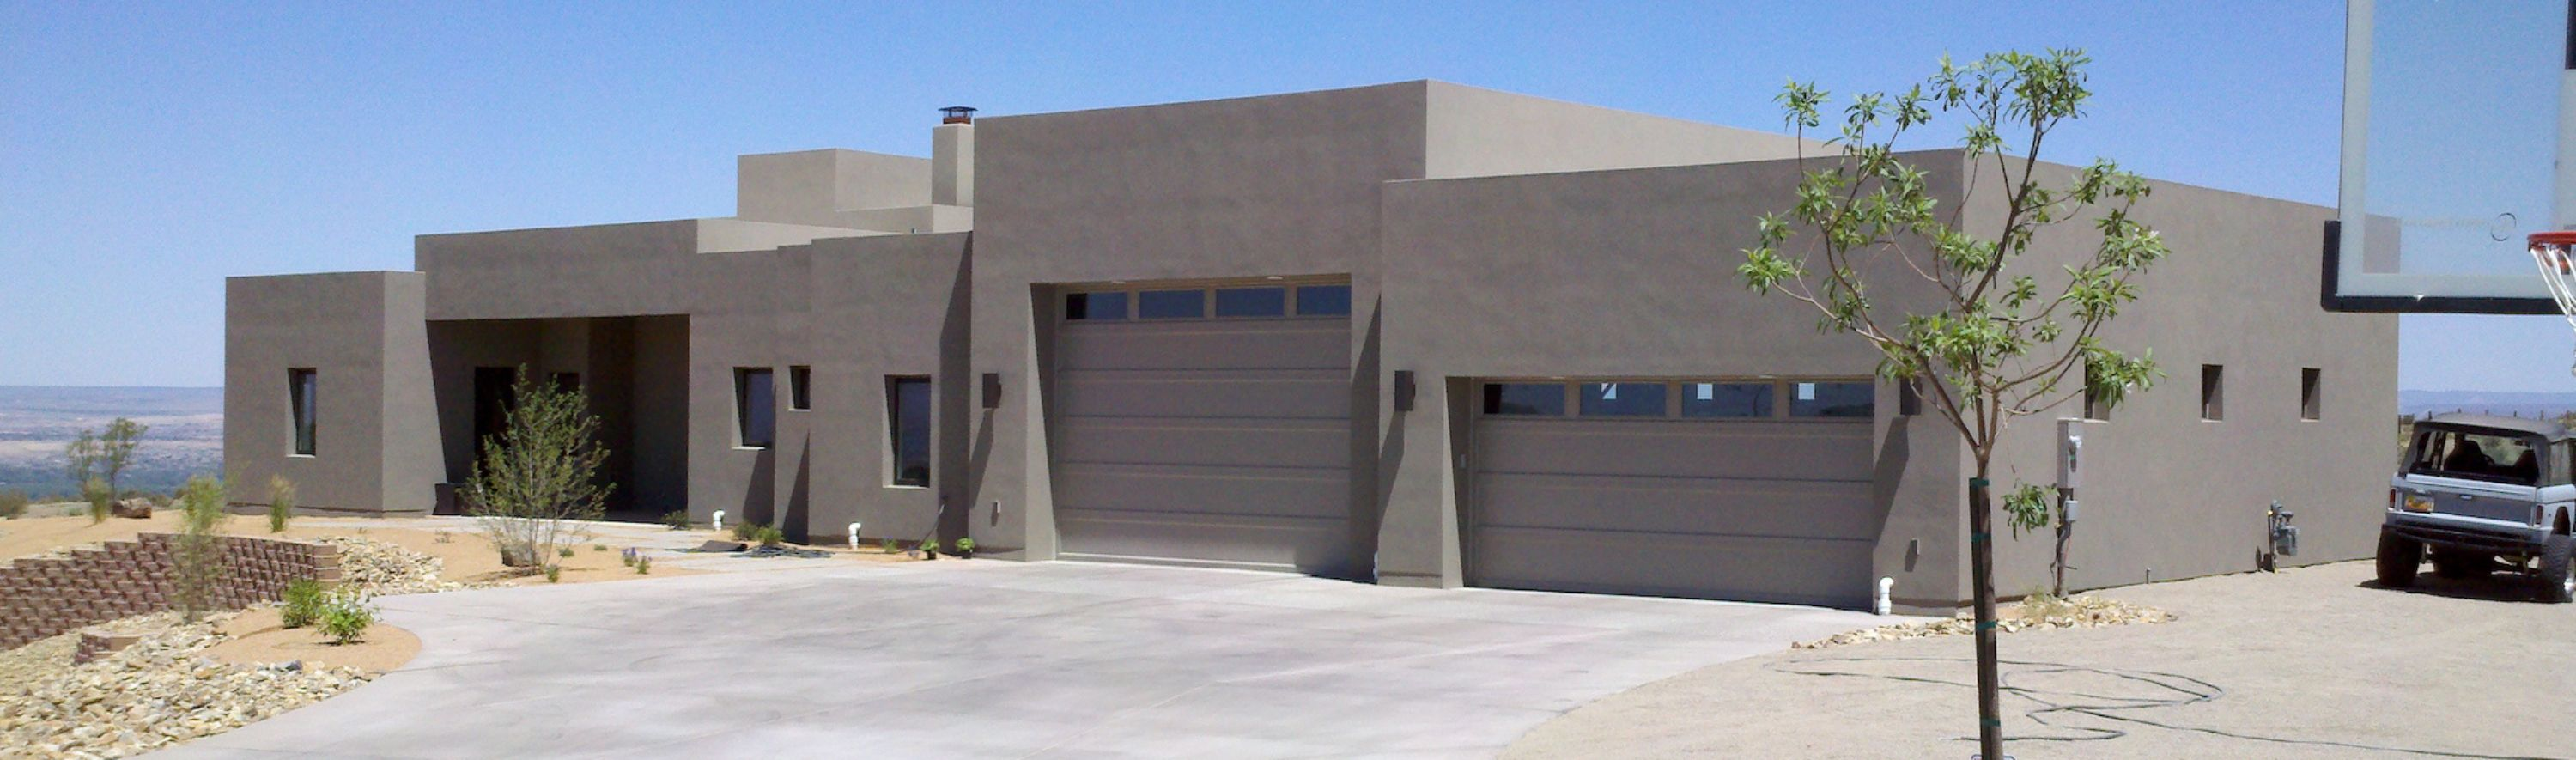 Garage Door Parts Near My Location Lake Havasu Garage Door Repair Parker Garage Doors